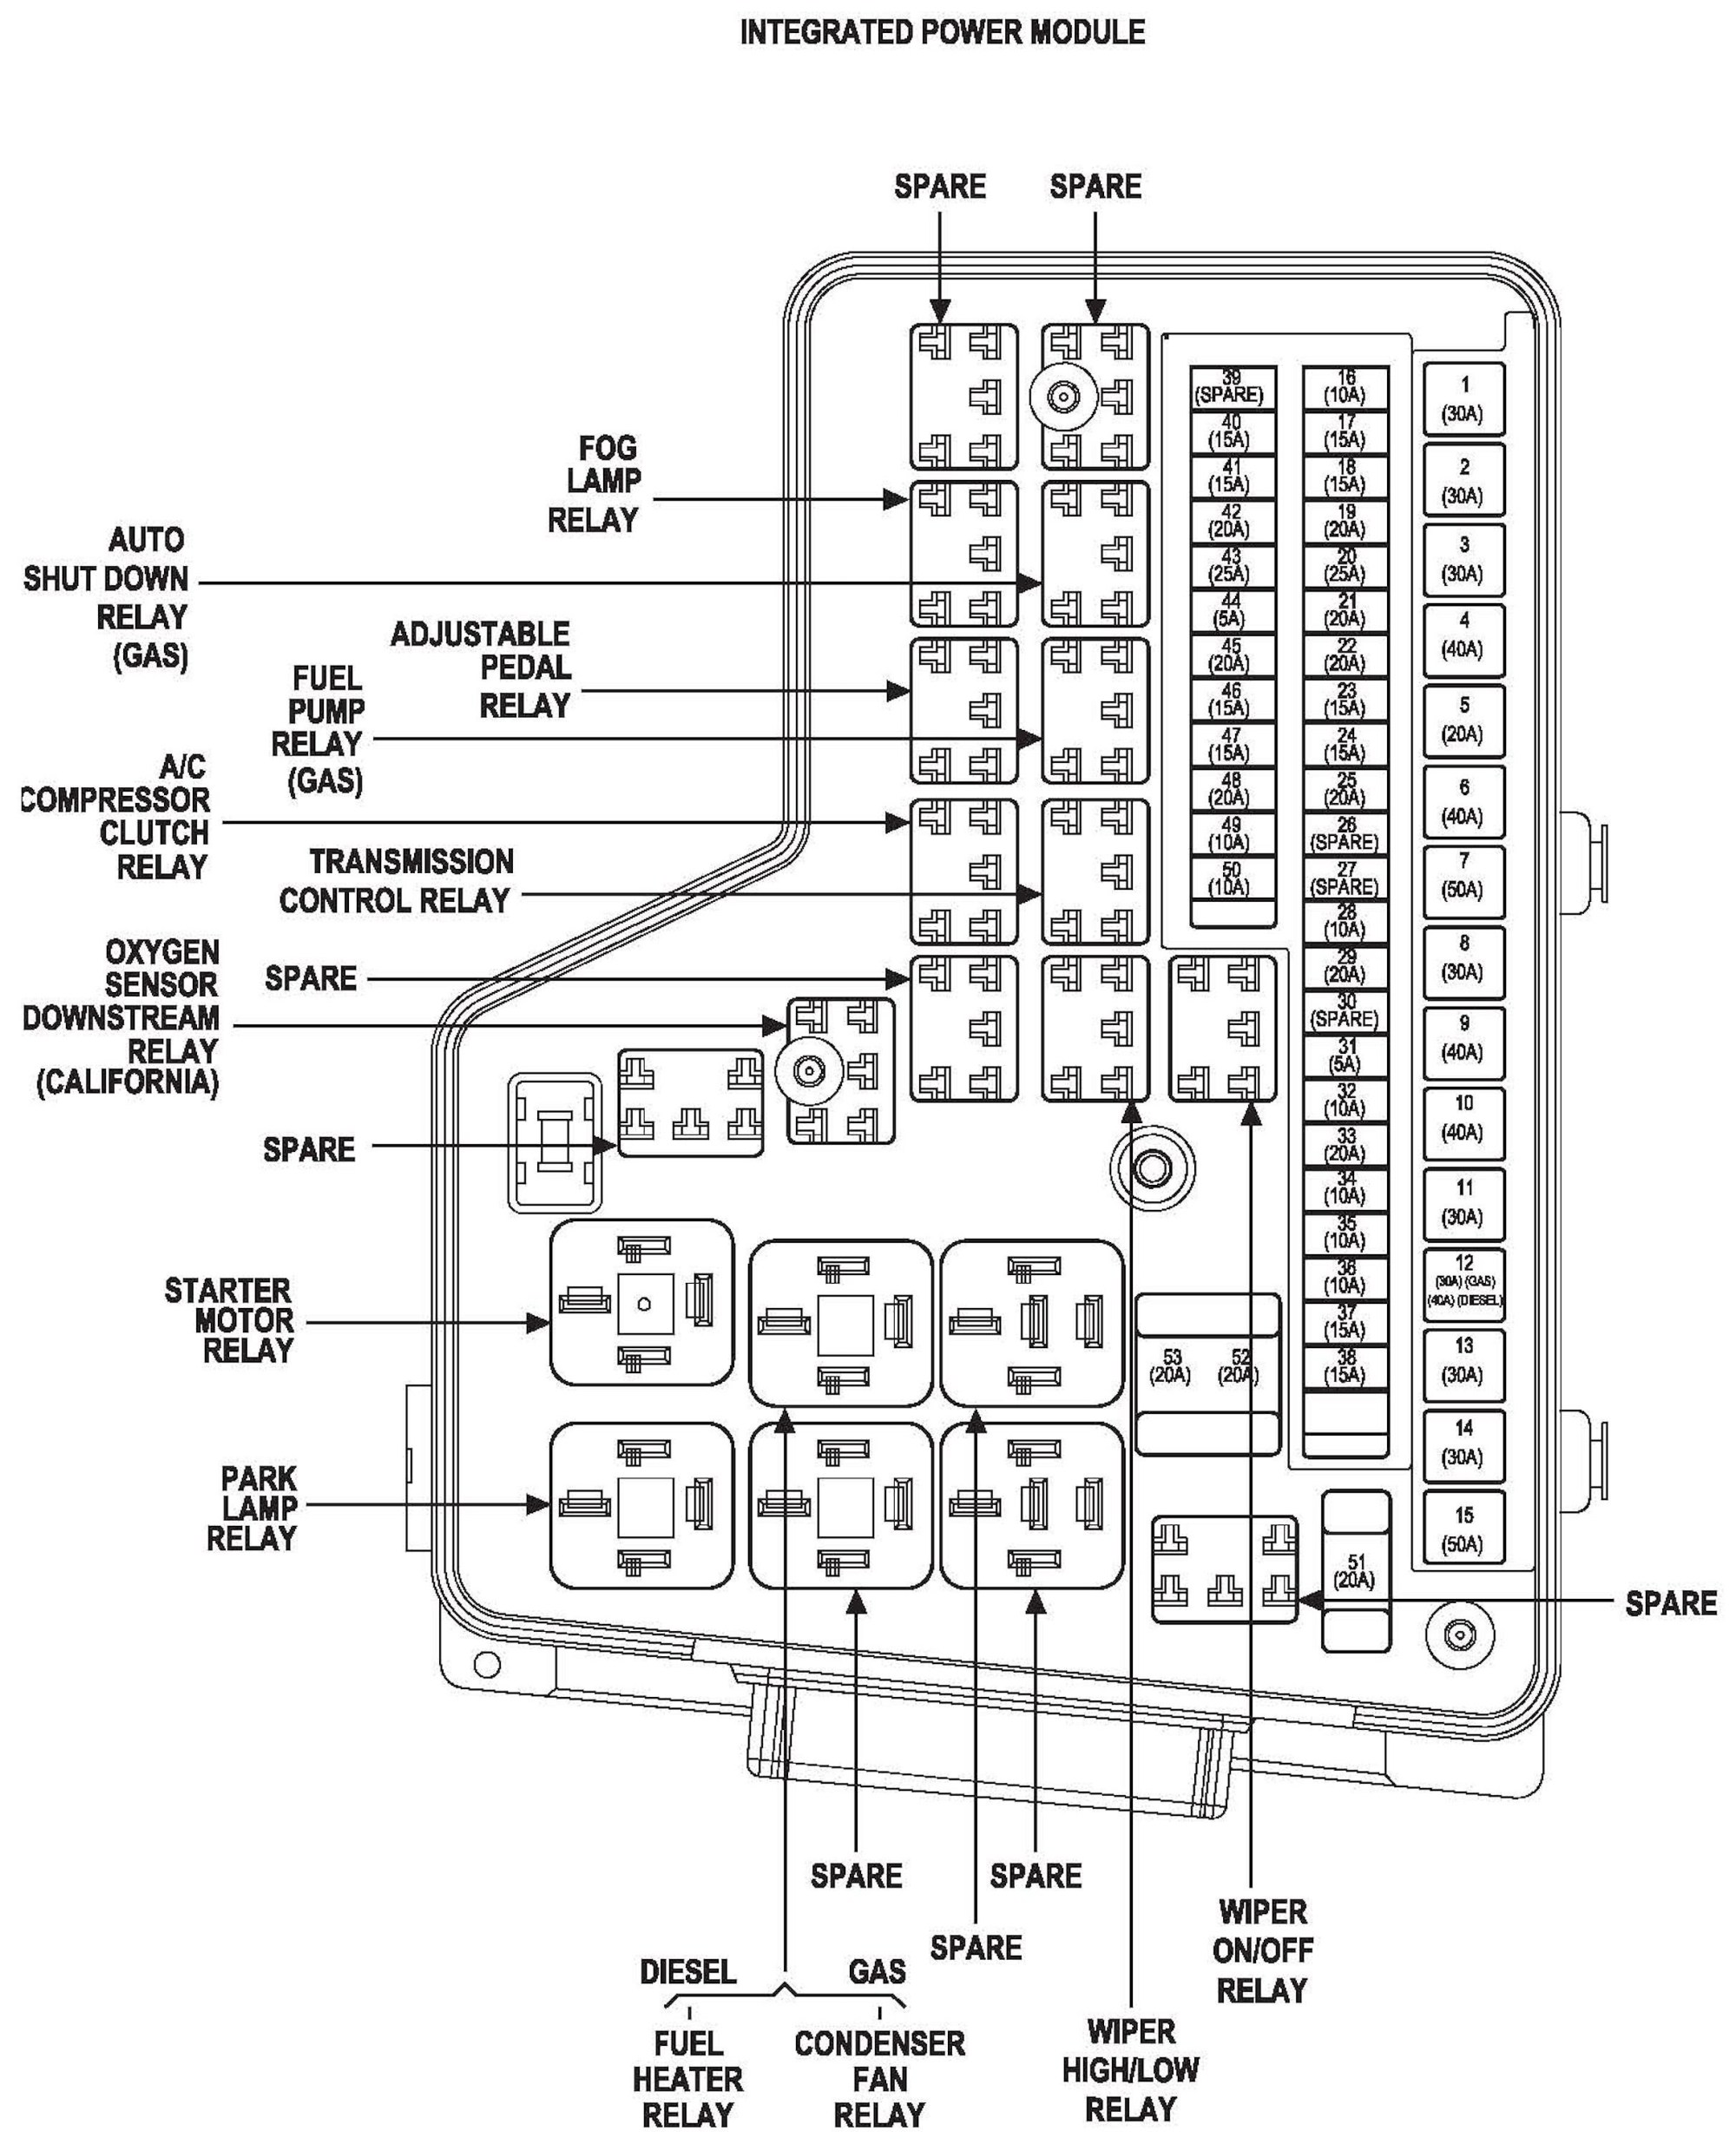 hight resolution of 2010 dodge ram 1500 fuse box wiring diagram term fuse box for dodge ram 1500 dodge